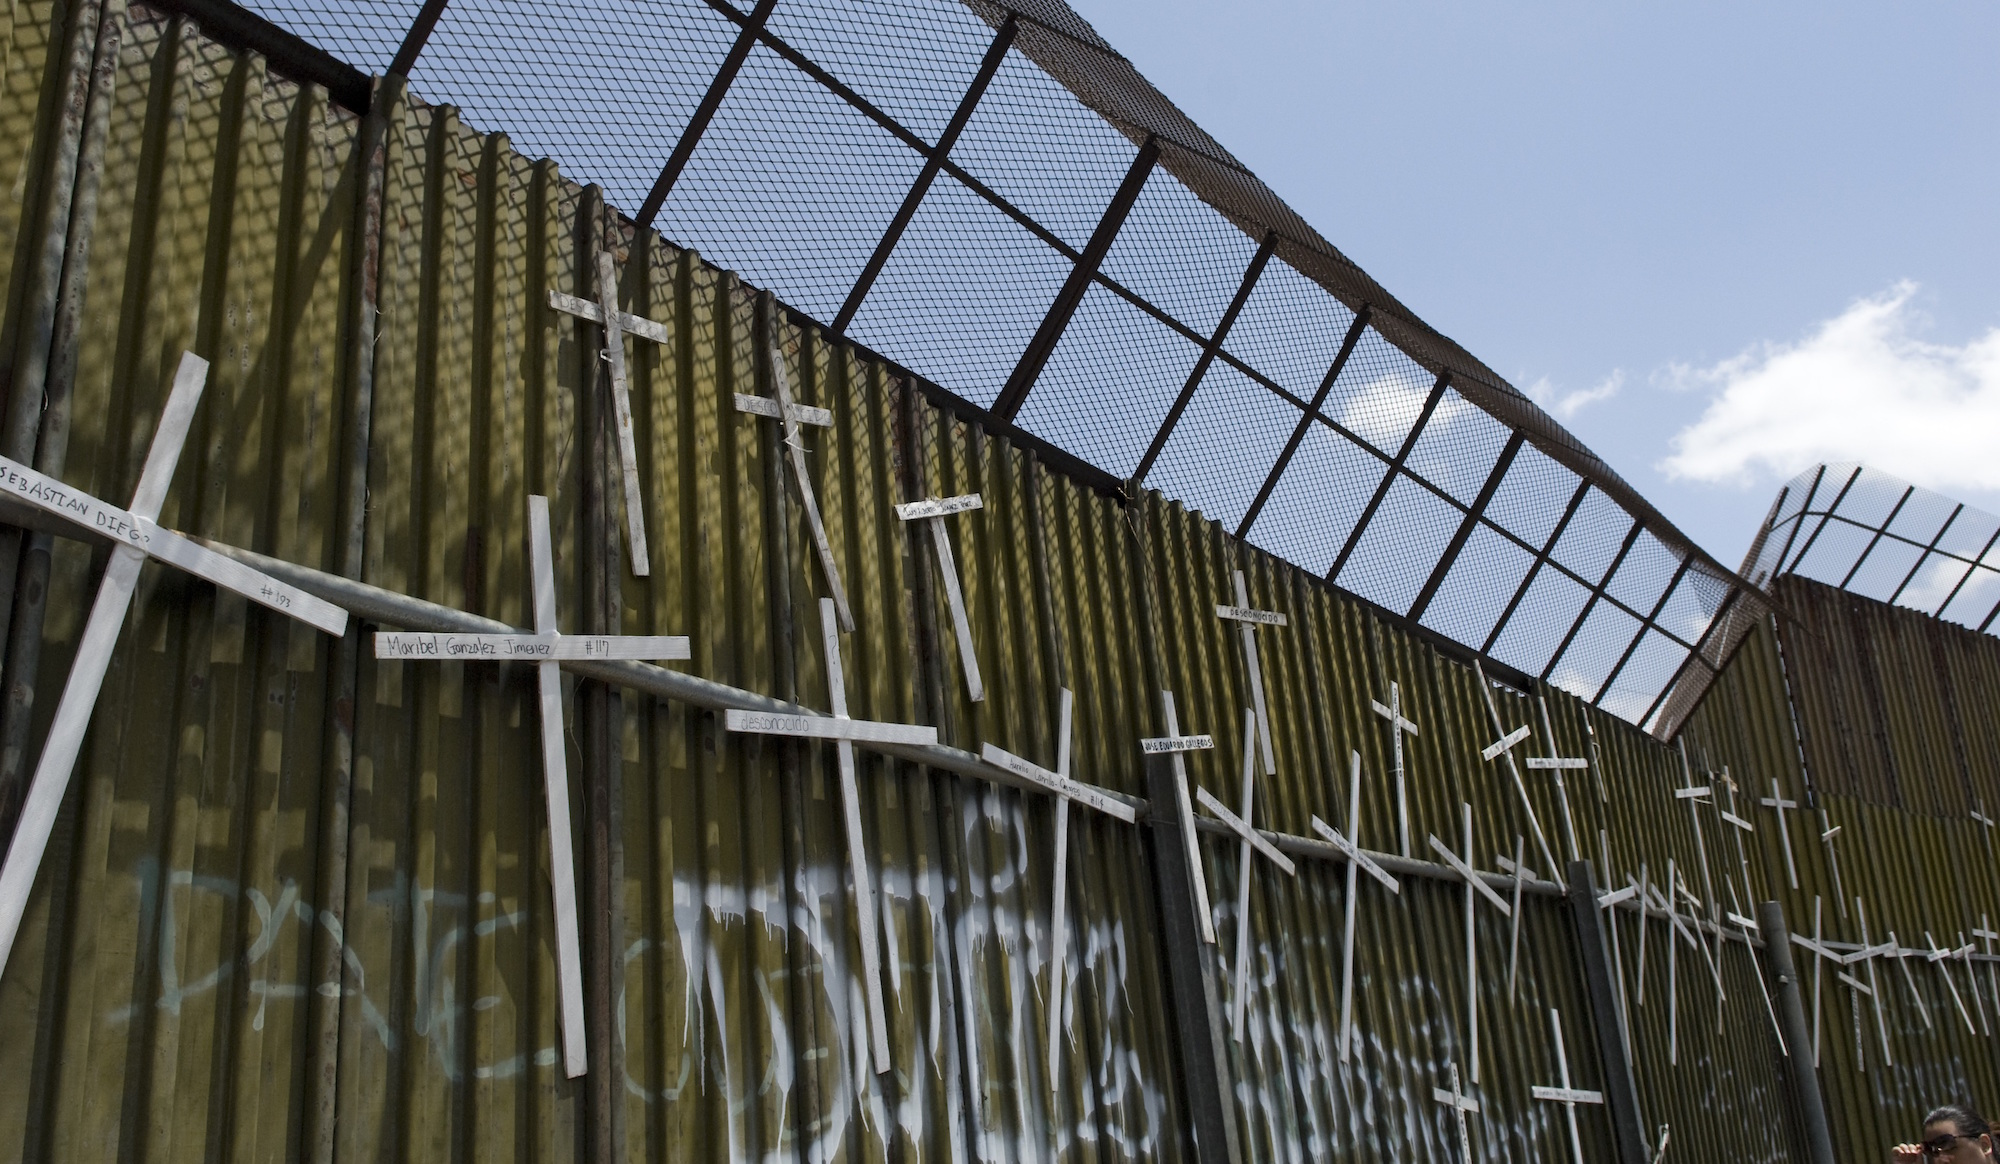 Crosses hang on the Mexican side of the border wall in Nogales, Mexico, commemorating the 4,000 people who have lost their lives attempting to cross the desert in search of a better life in the United States.